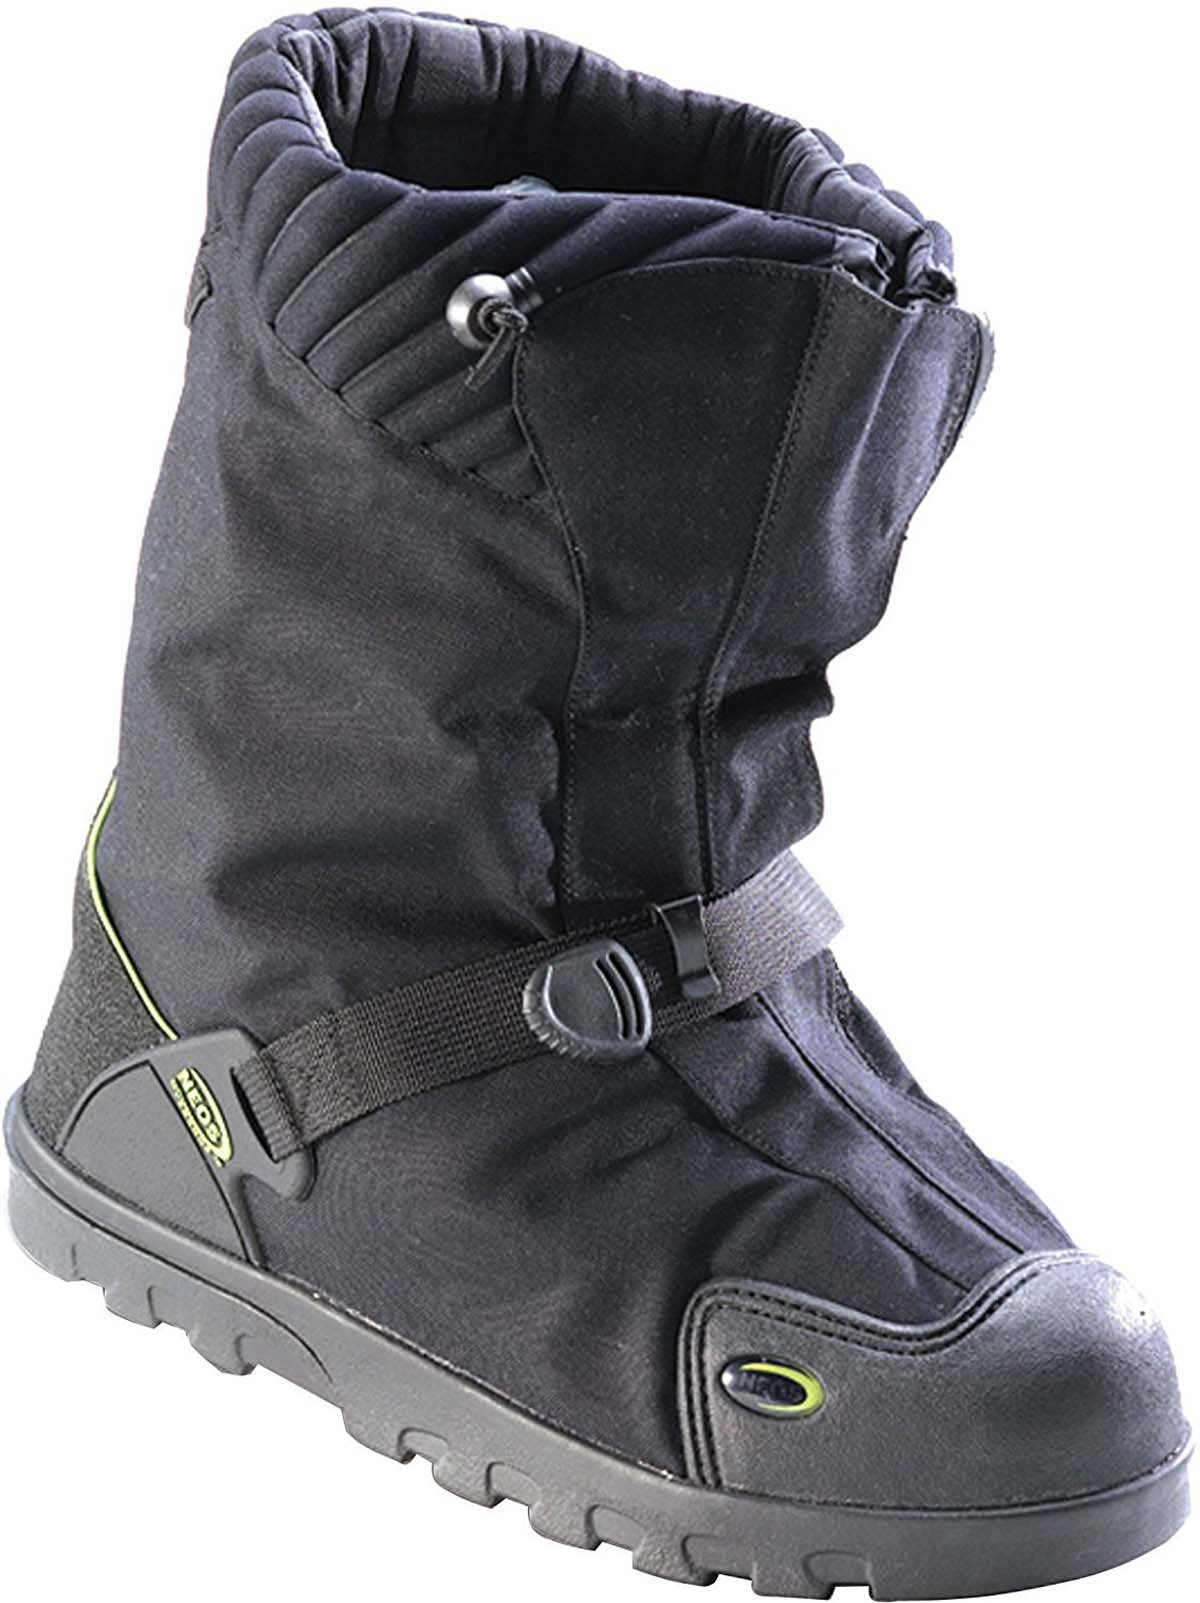 NEOS 11'' Explorer Waterproof Winter Overshoes (EXPG)